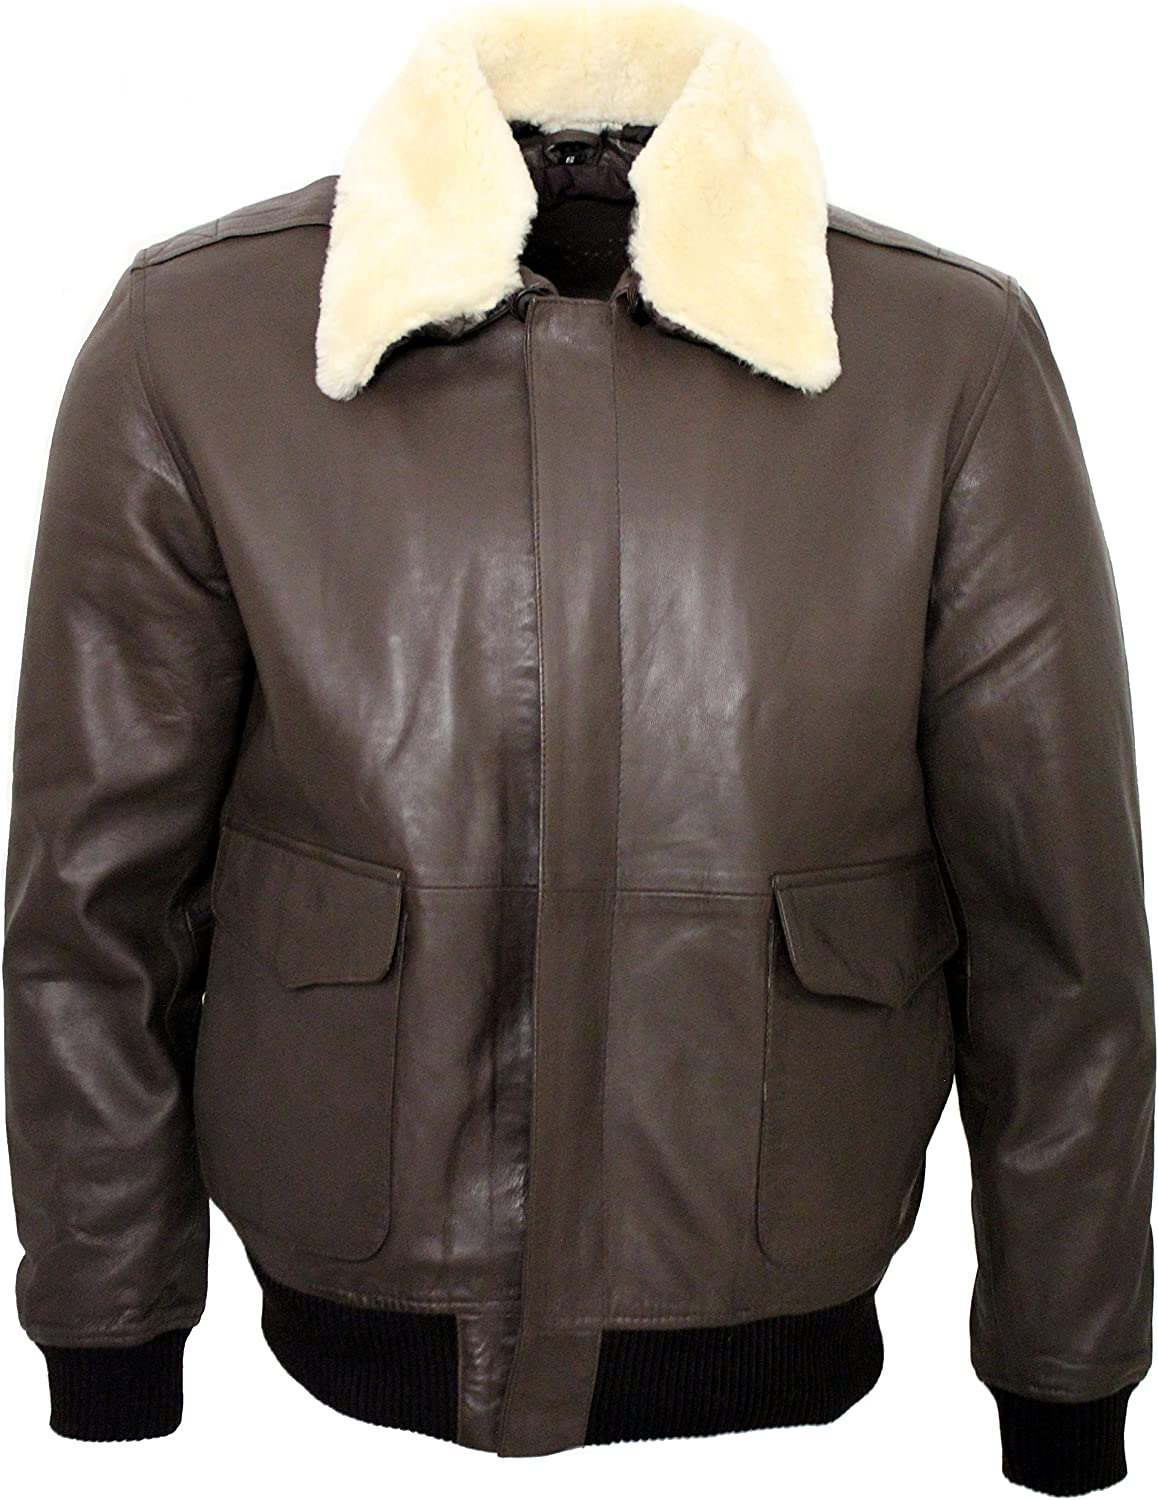 Infinity Men's A2 Brown Sheep Nappa Leather Bomber Jacket with Detachable Sheepskin Collar